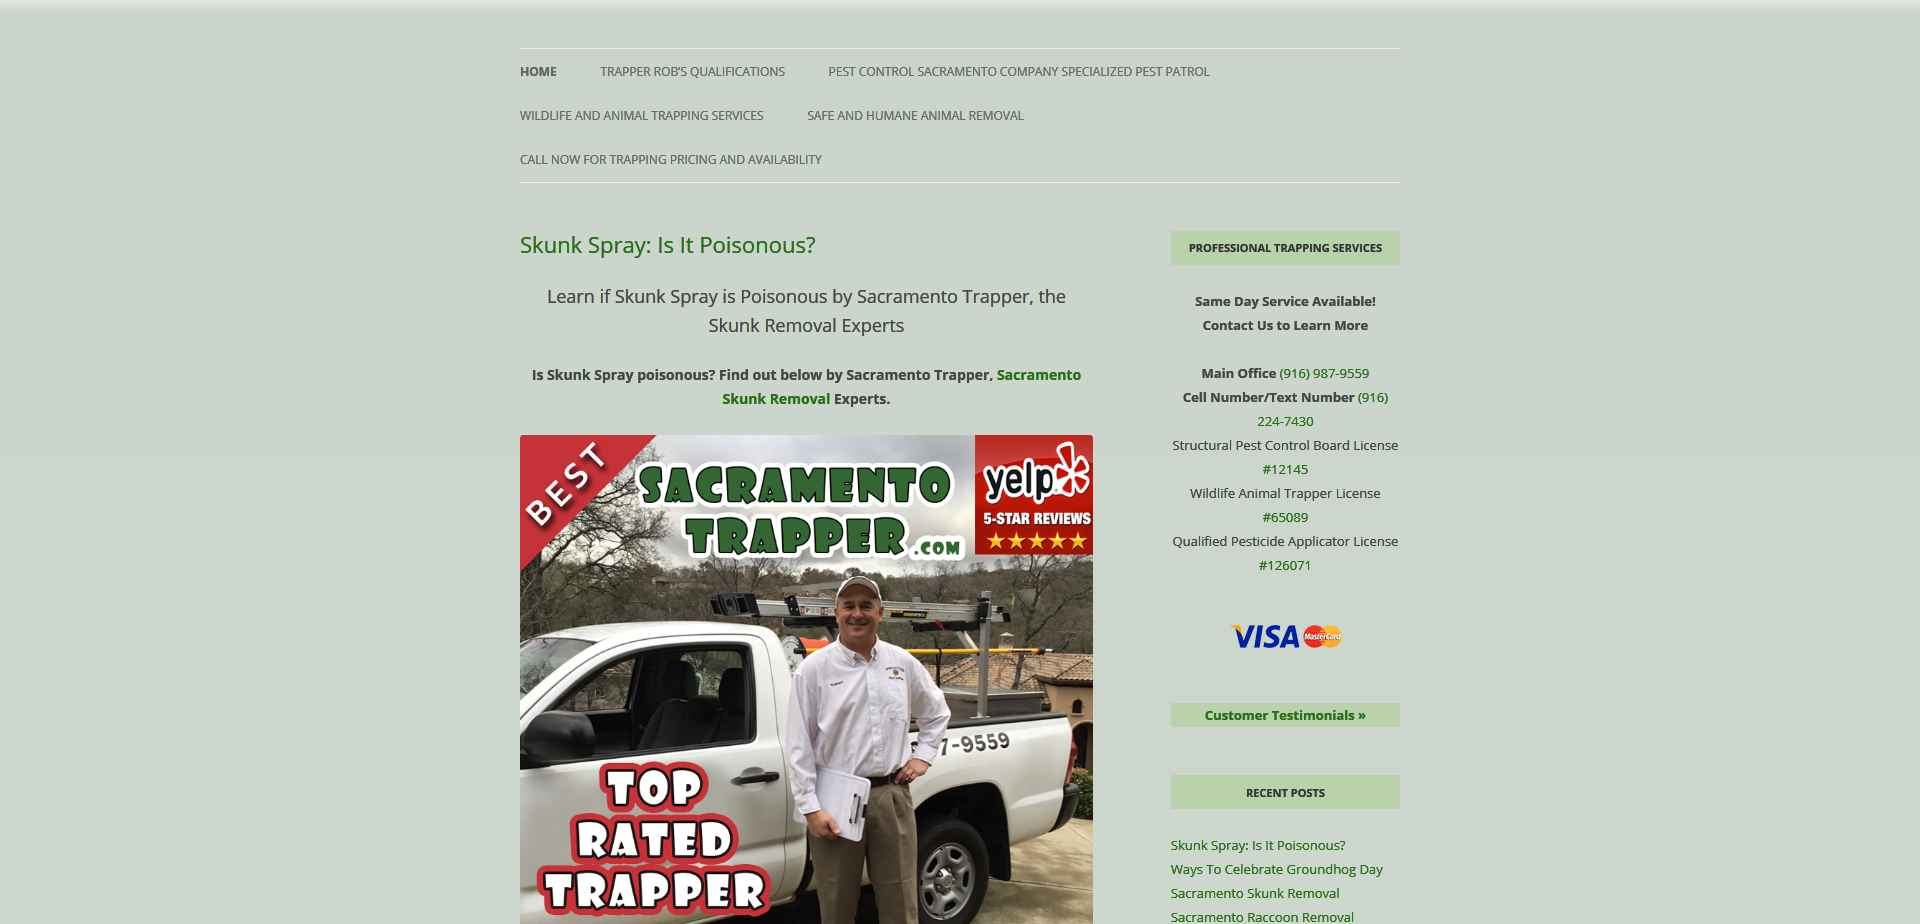 SEO Case Study: Google First Page Ranking for Sacramento Trapper using Our Advanced Local SEO Strategies Drives Their Revenue Up Record Numbers Year After Year